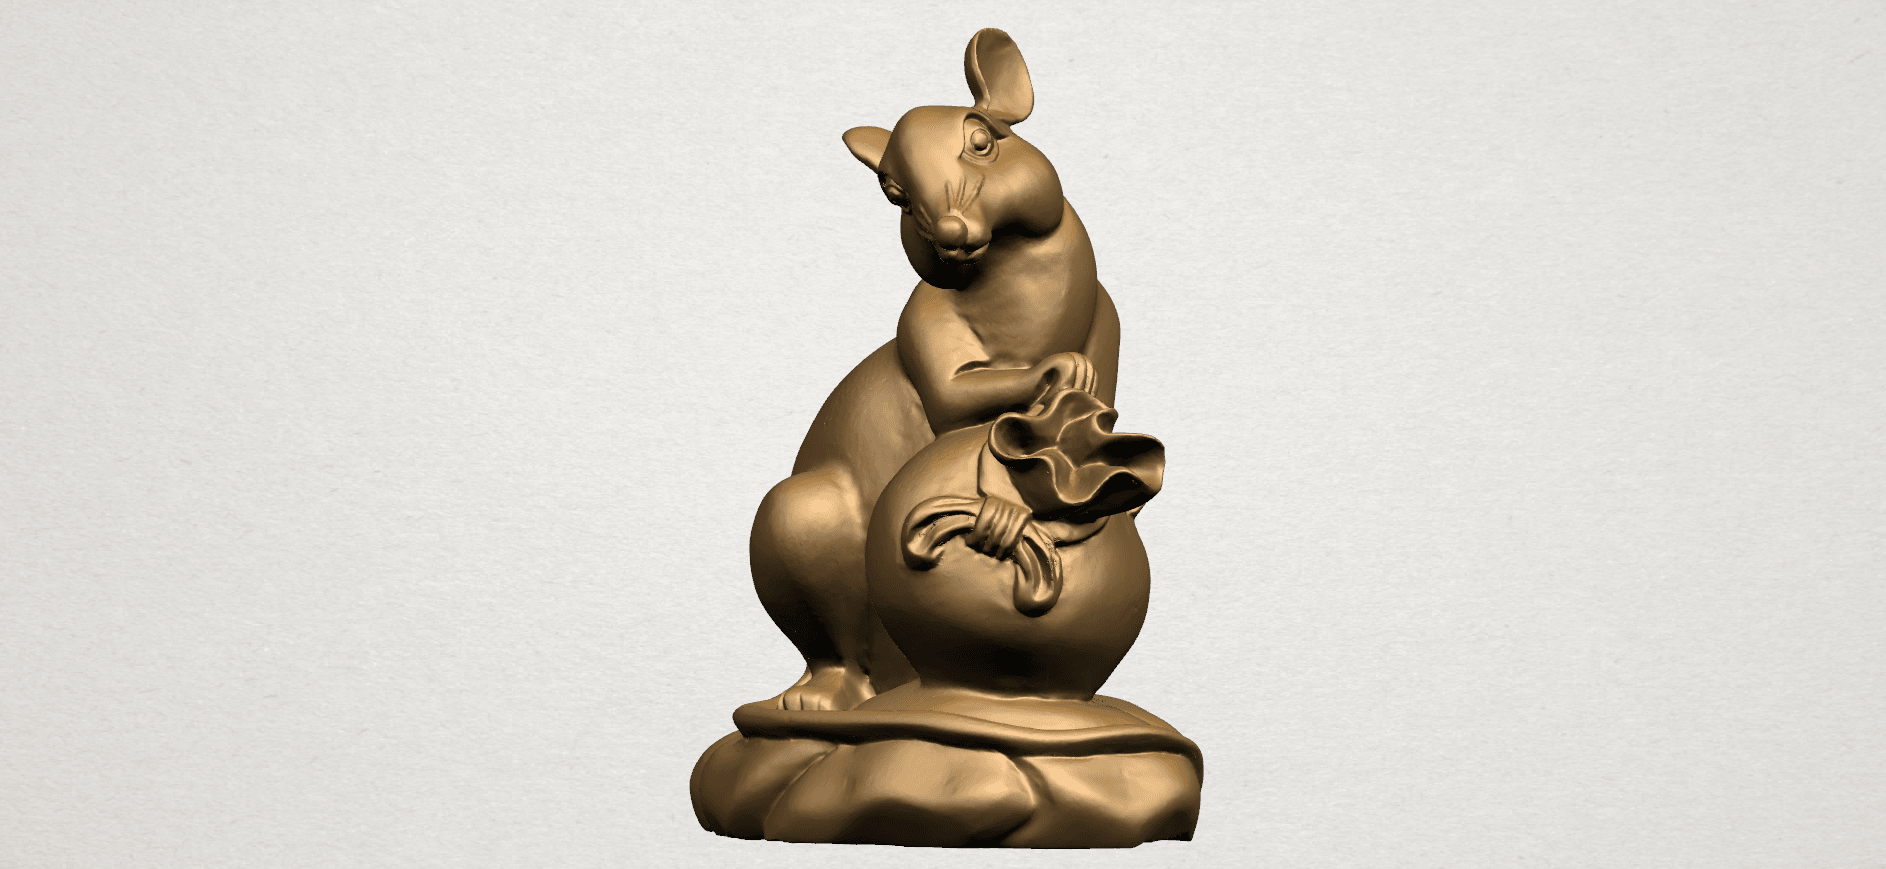 Chinese Horoscope01-A04.png Download free STL file Chinese Horoscope 01 Rat • 3D printing object, GeorgesNikkei